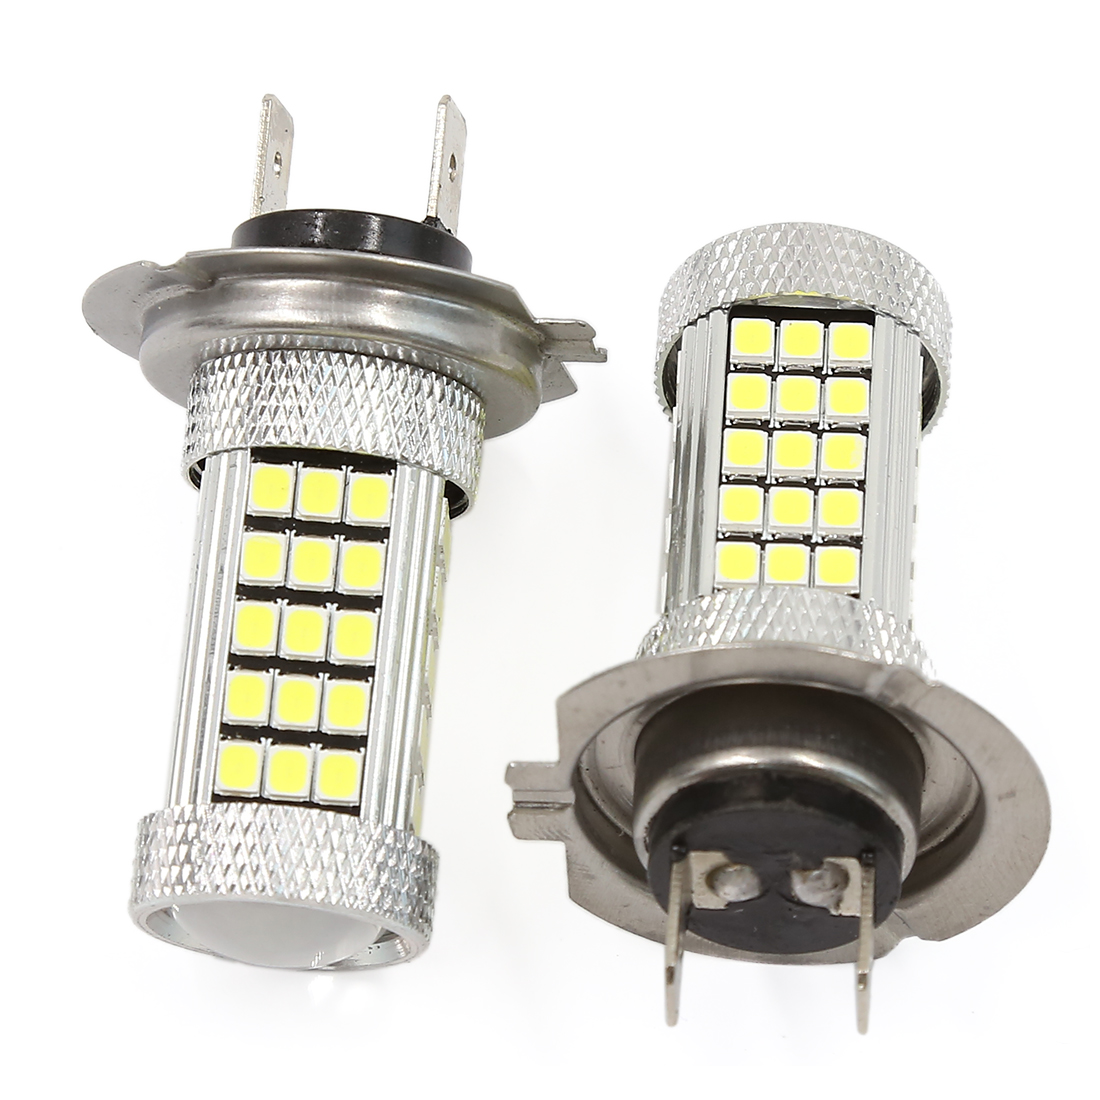 2 Pcs H7 White 63-LEDs 2835 SMD Fog Driving DRL Light Bulbs DC 12V for Car